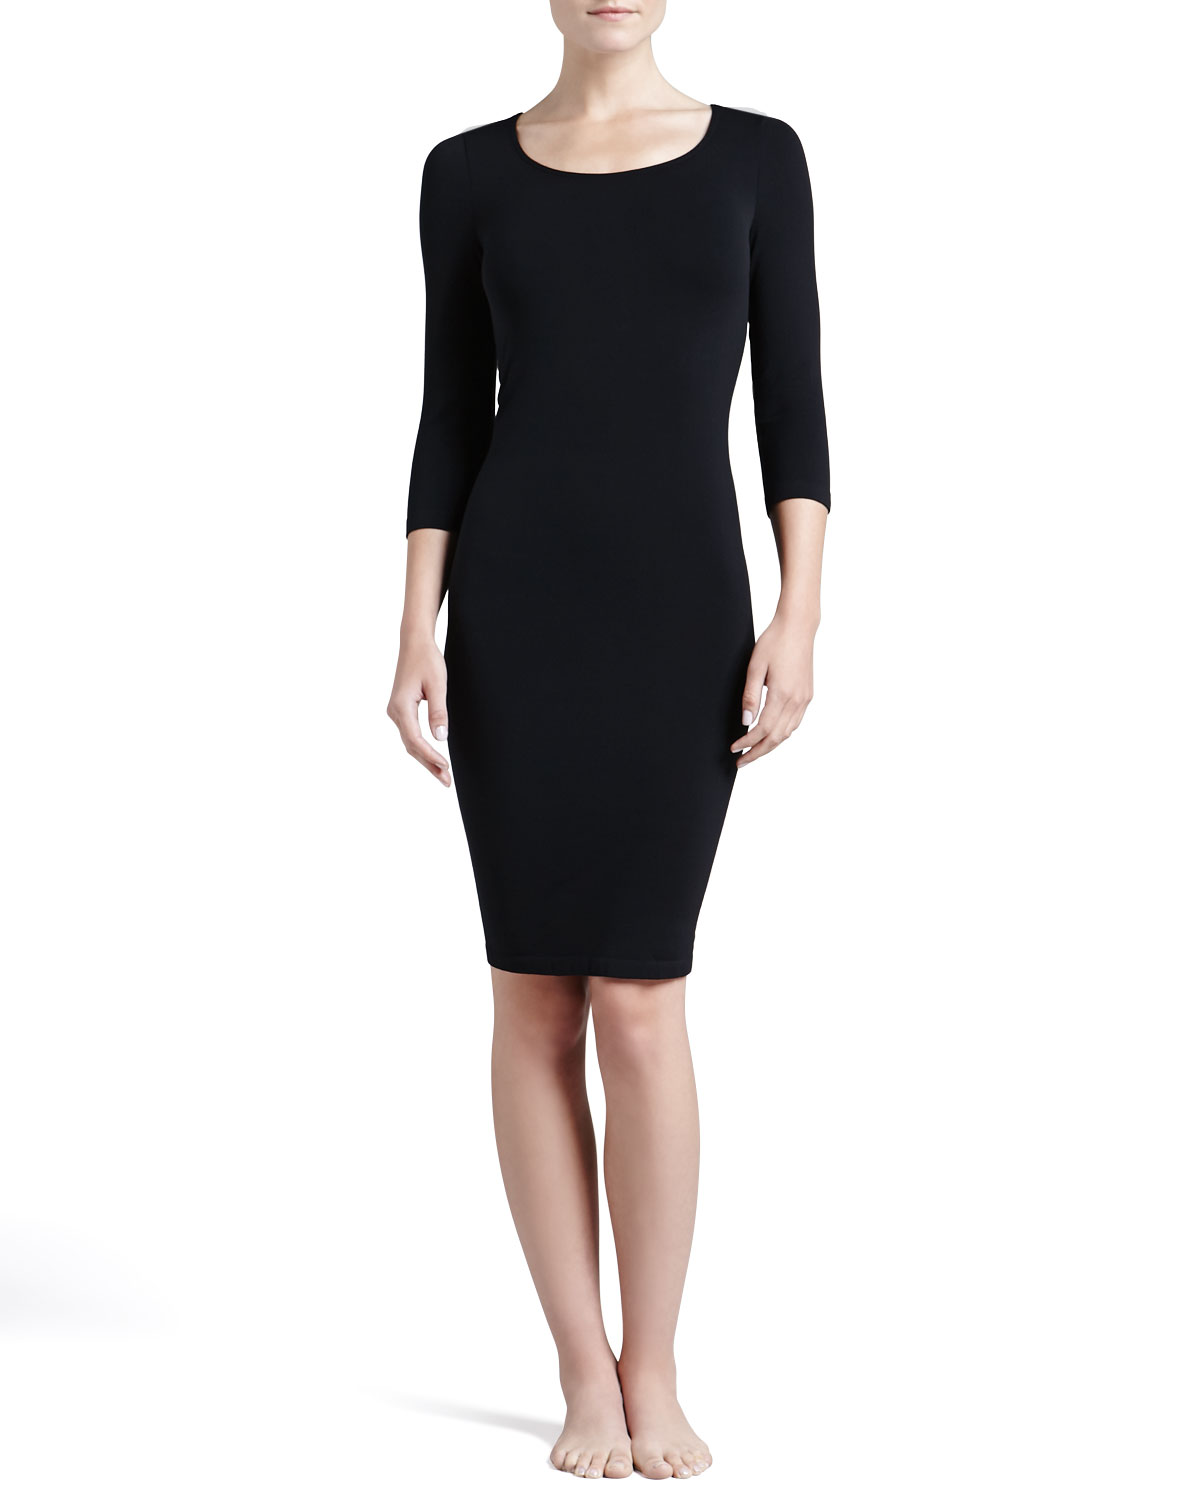 d411e0cd4db Womens Barcelona 3 4 Sleeve Lounge Dress Wolford Black (SMALL) on ...